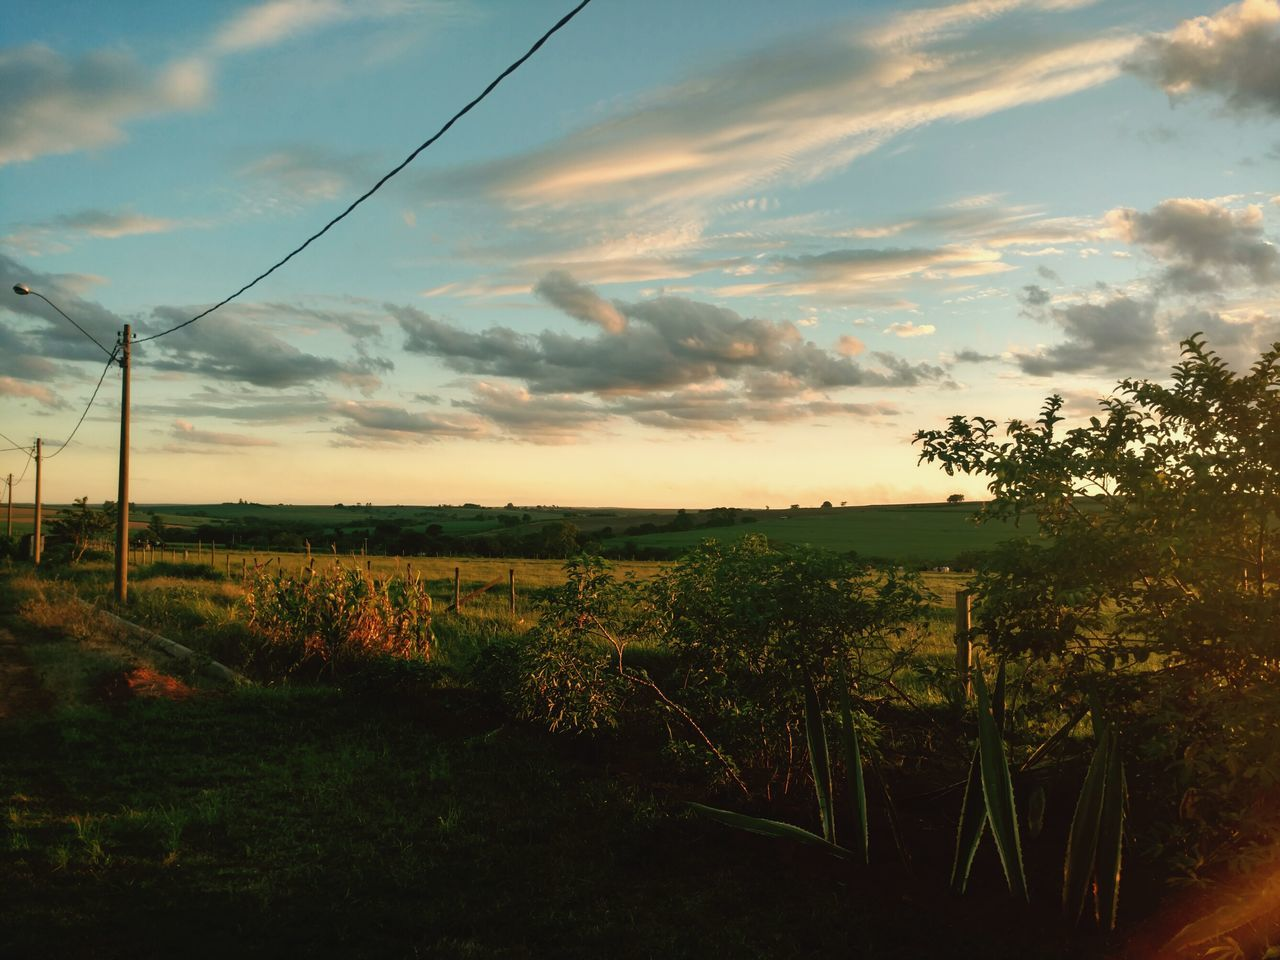 nature, sky, landscape, sunset, scenics, tranquility, field, tranquil scene, agriculture, tree, cable, growth, cloud - sky, no people, rural scene, beauty in nature, outdoors, grass, day